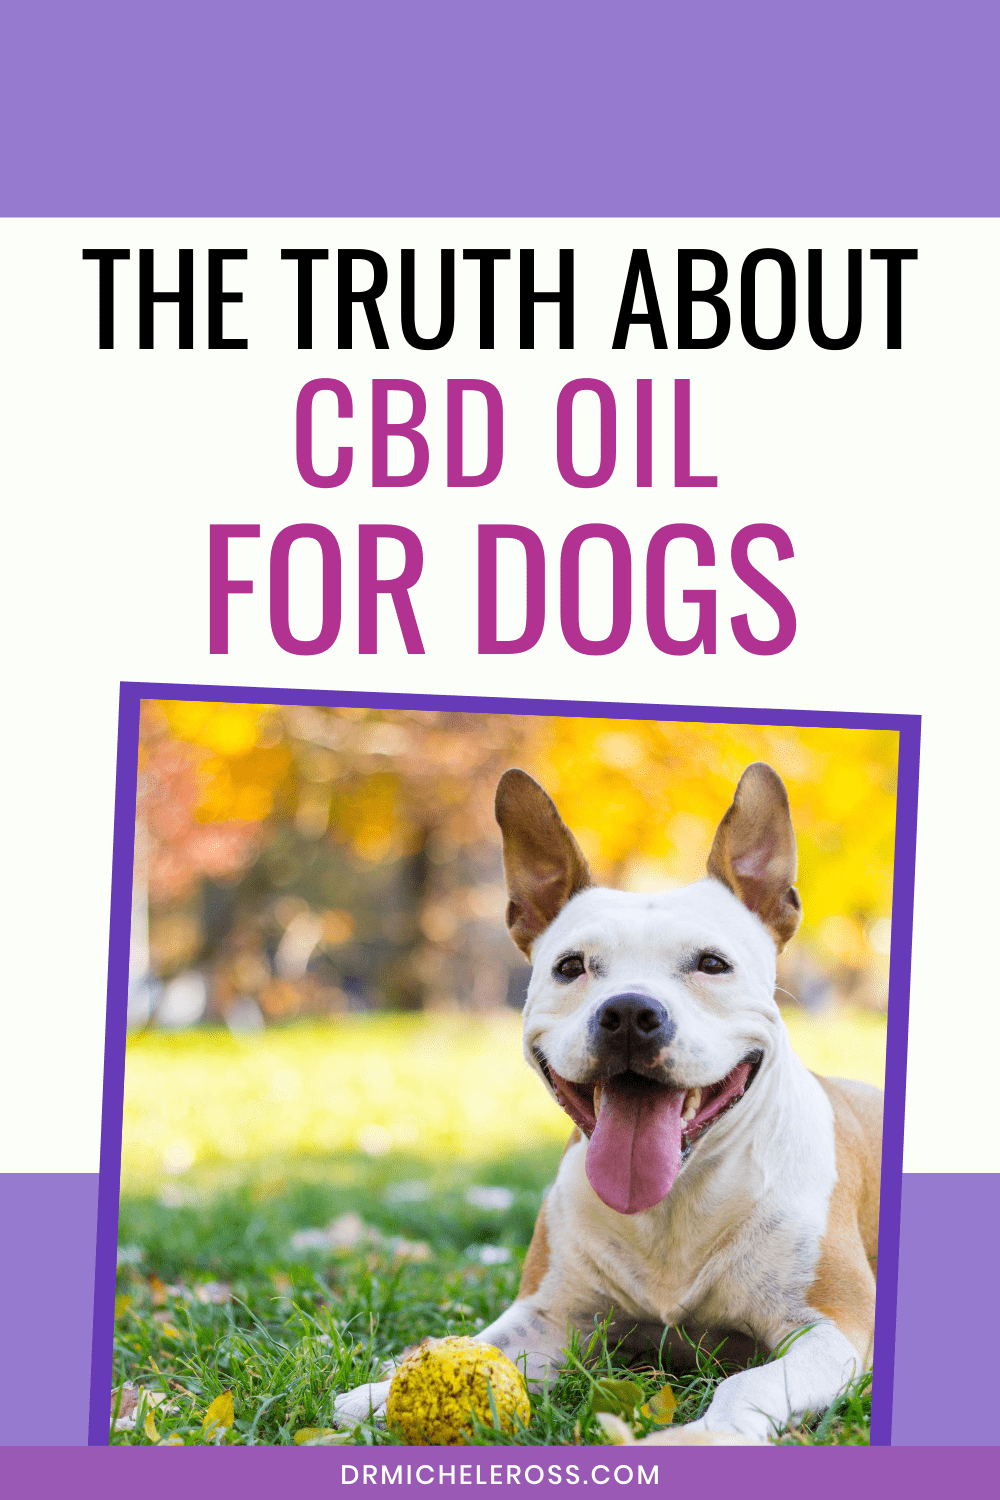 The Truth About CBD Oil for Dogs